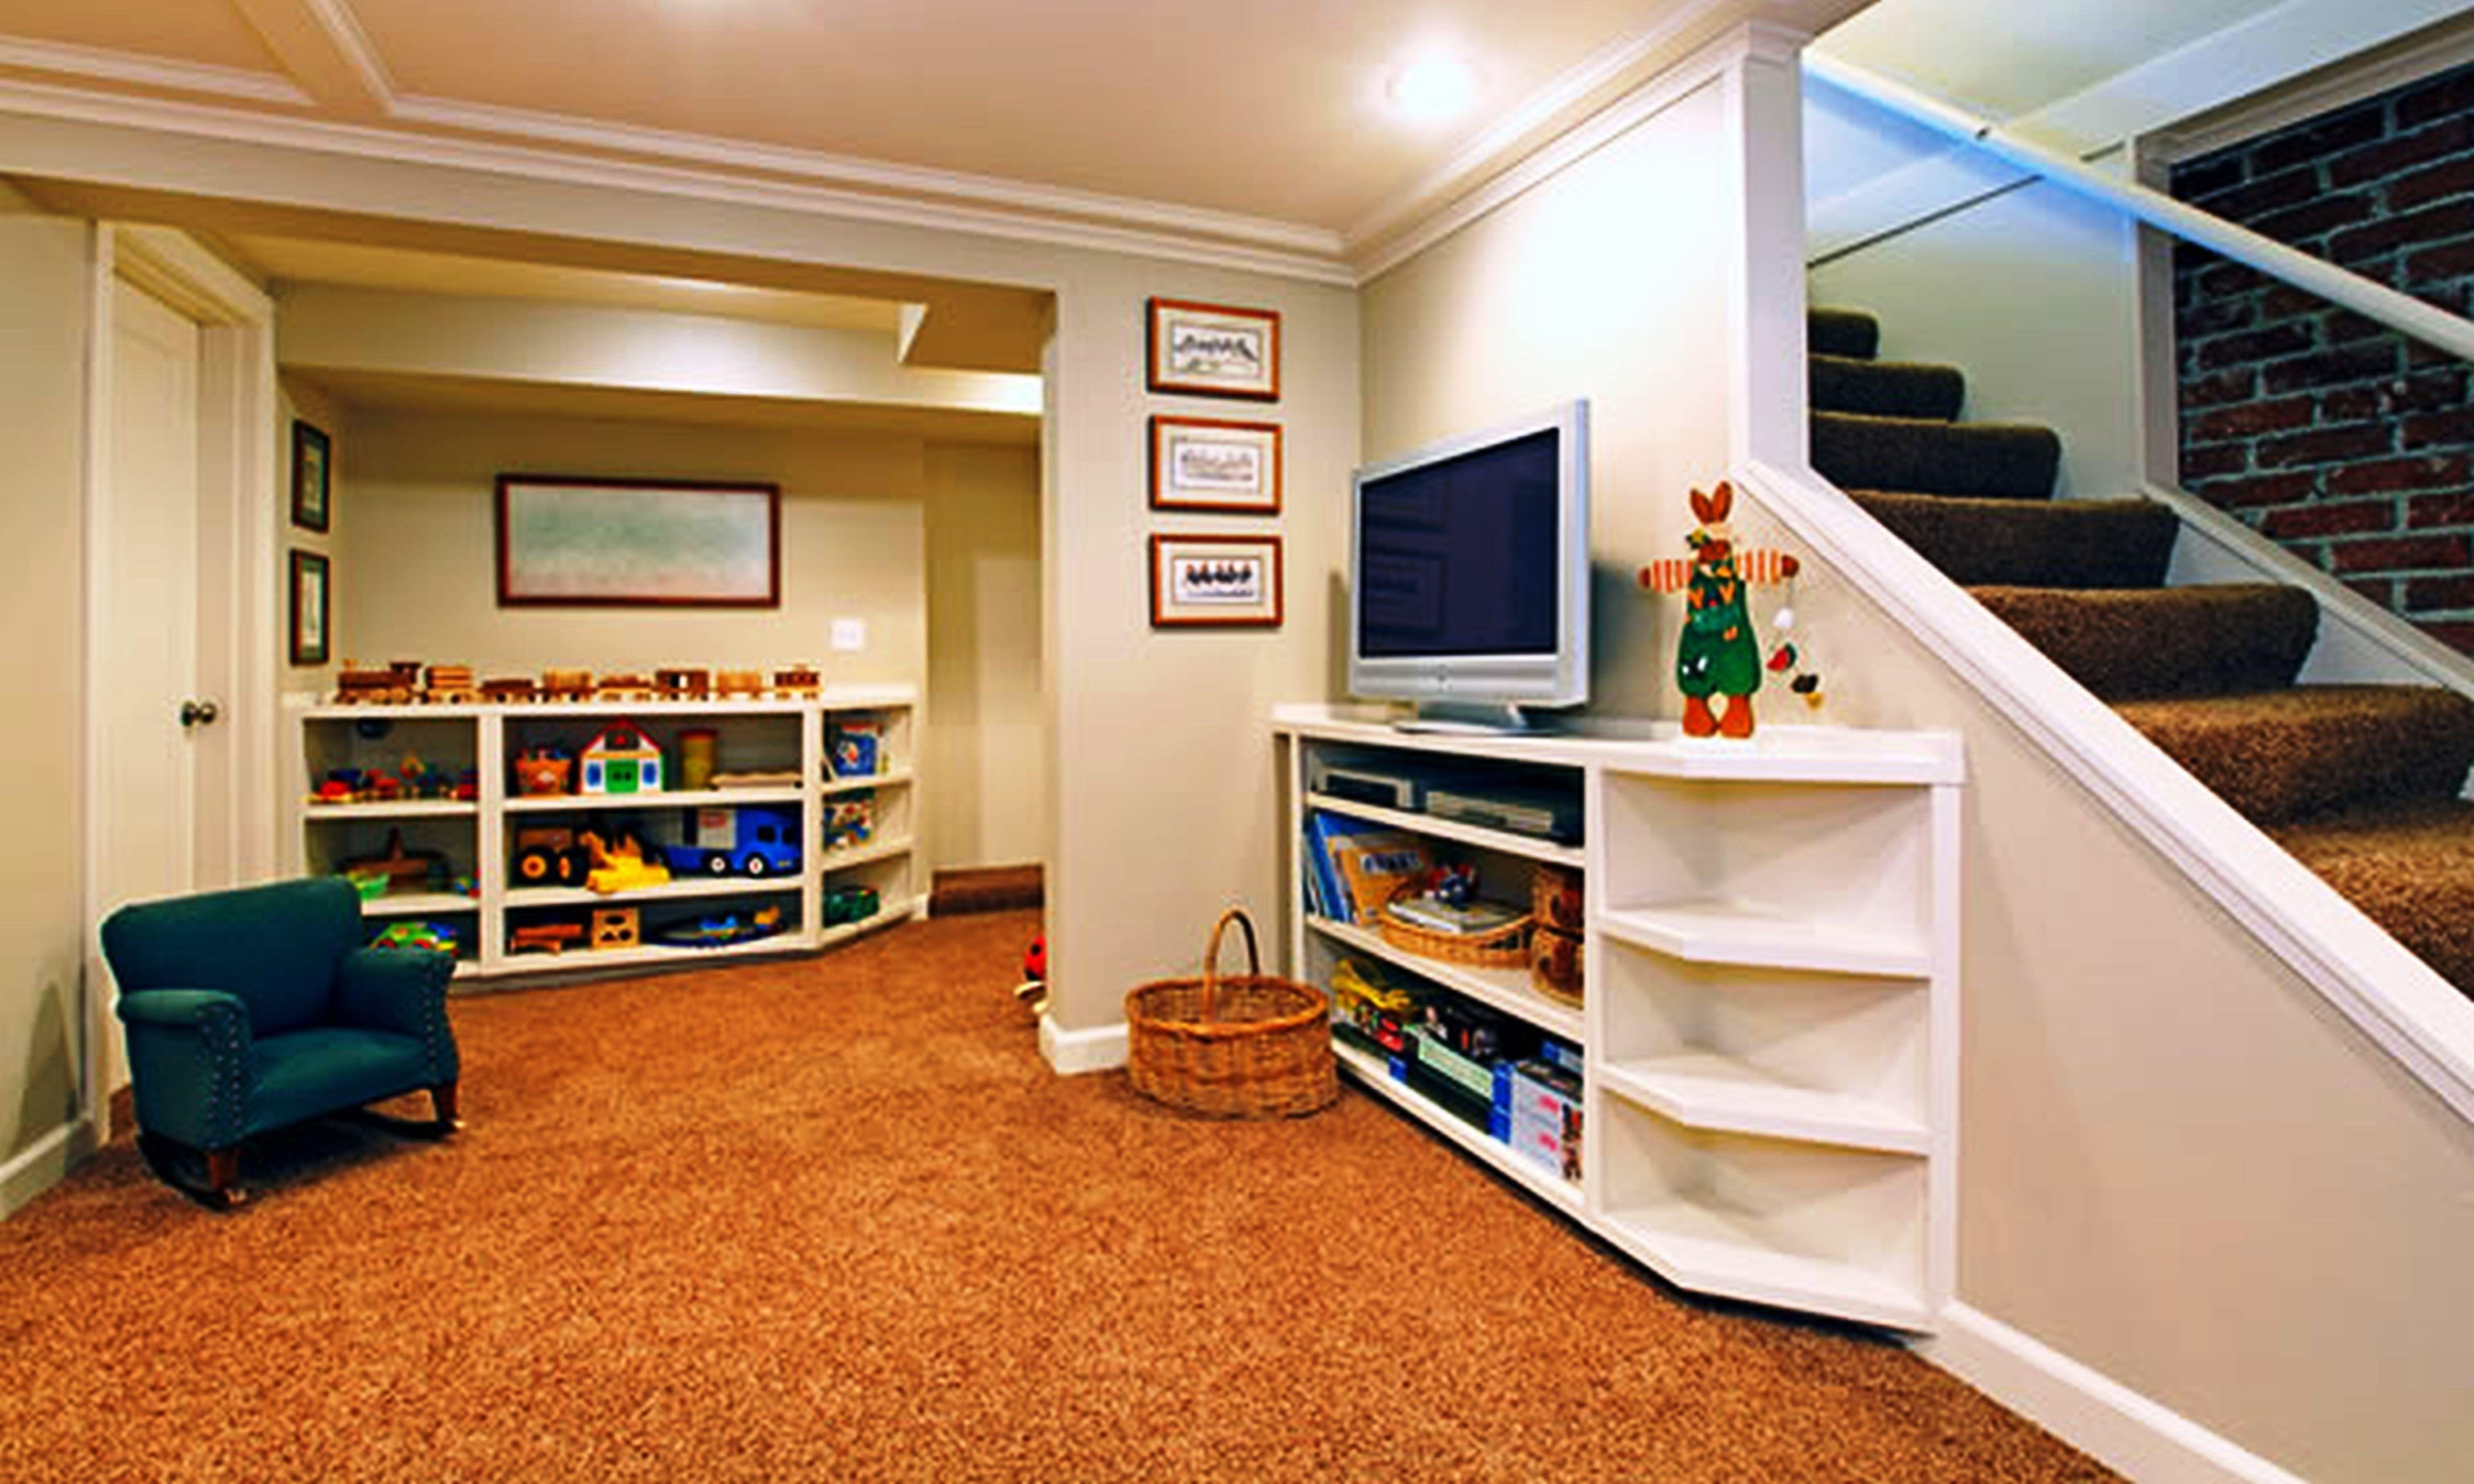 10 Fantastic Basement Ideas On A Budget finished basement ideas small on with hd resolution 5000x3000 pixels 1 2020